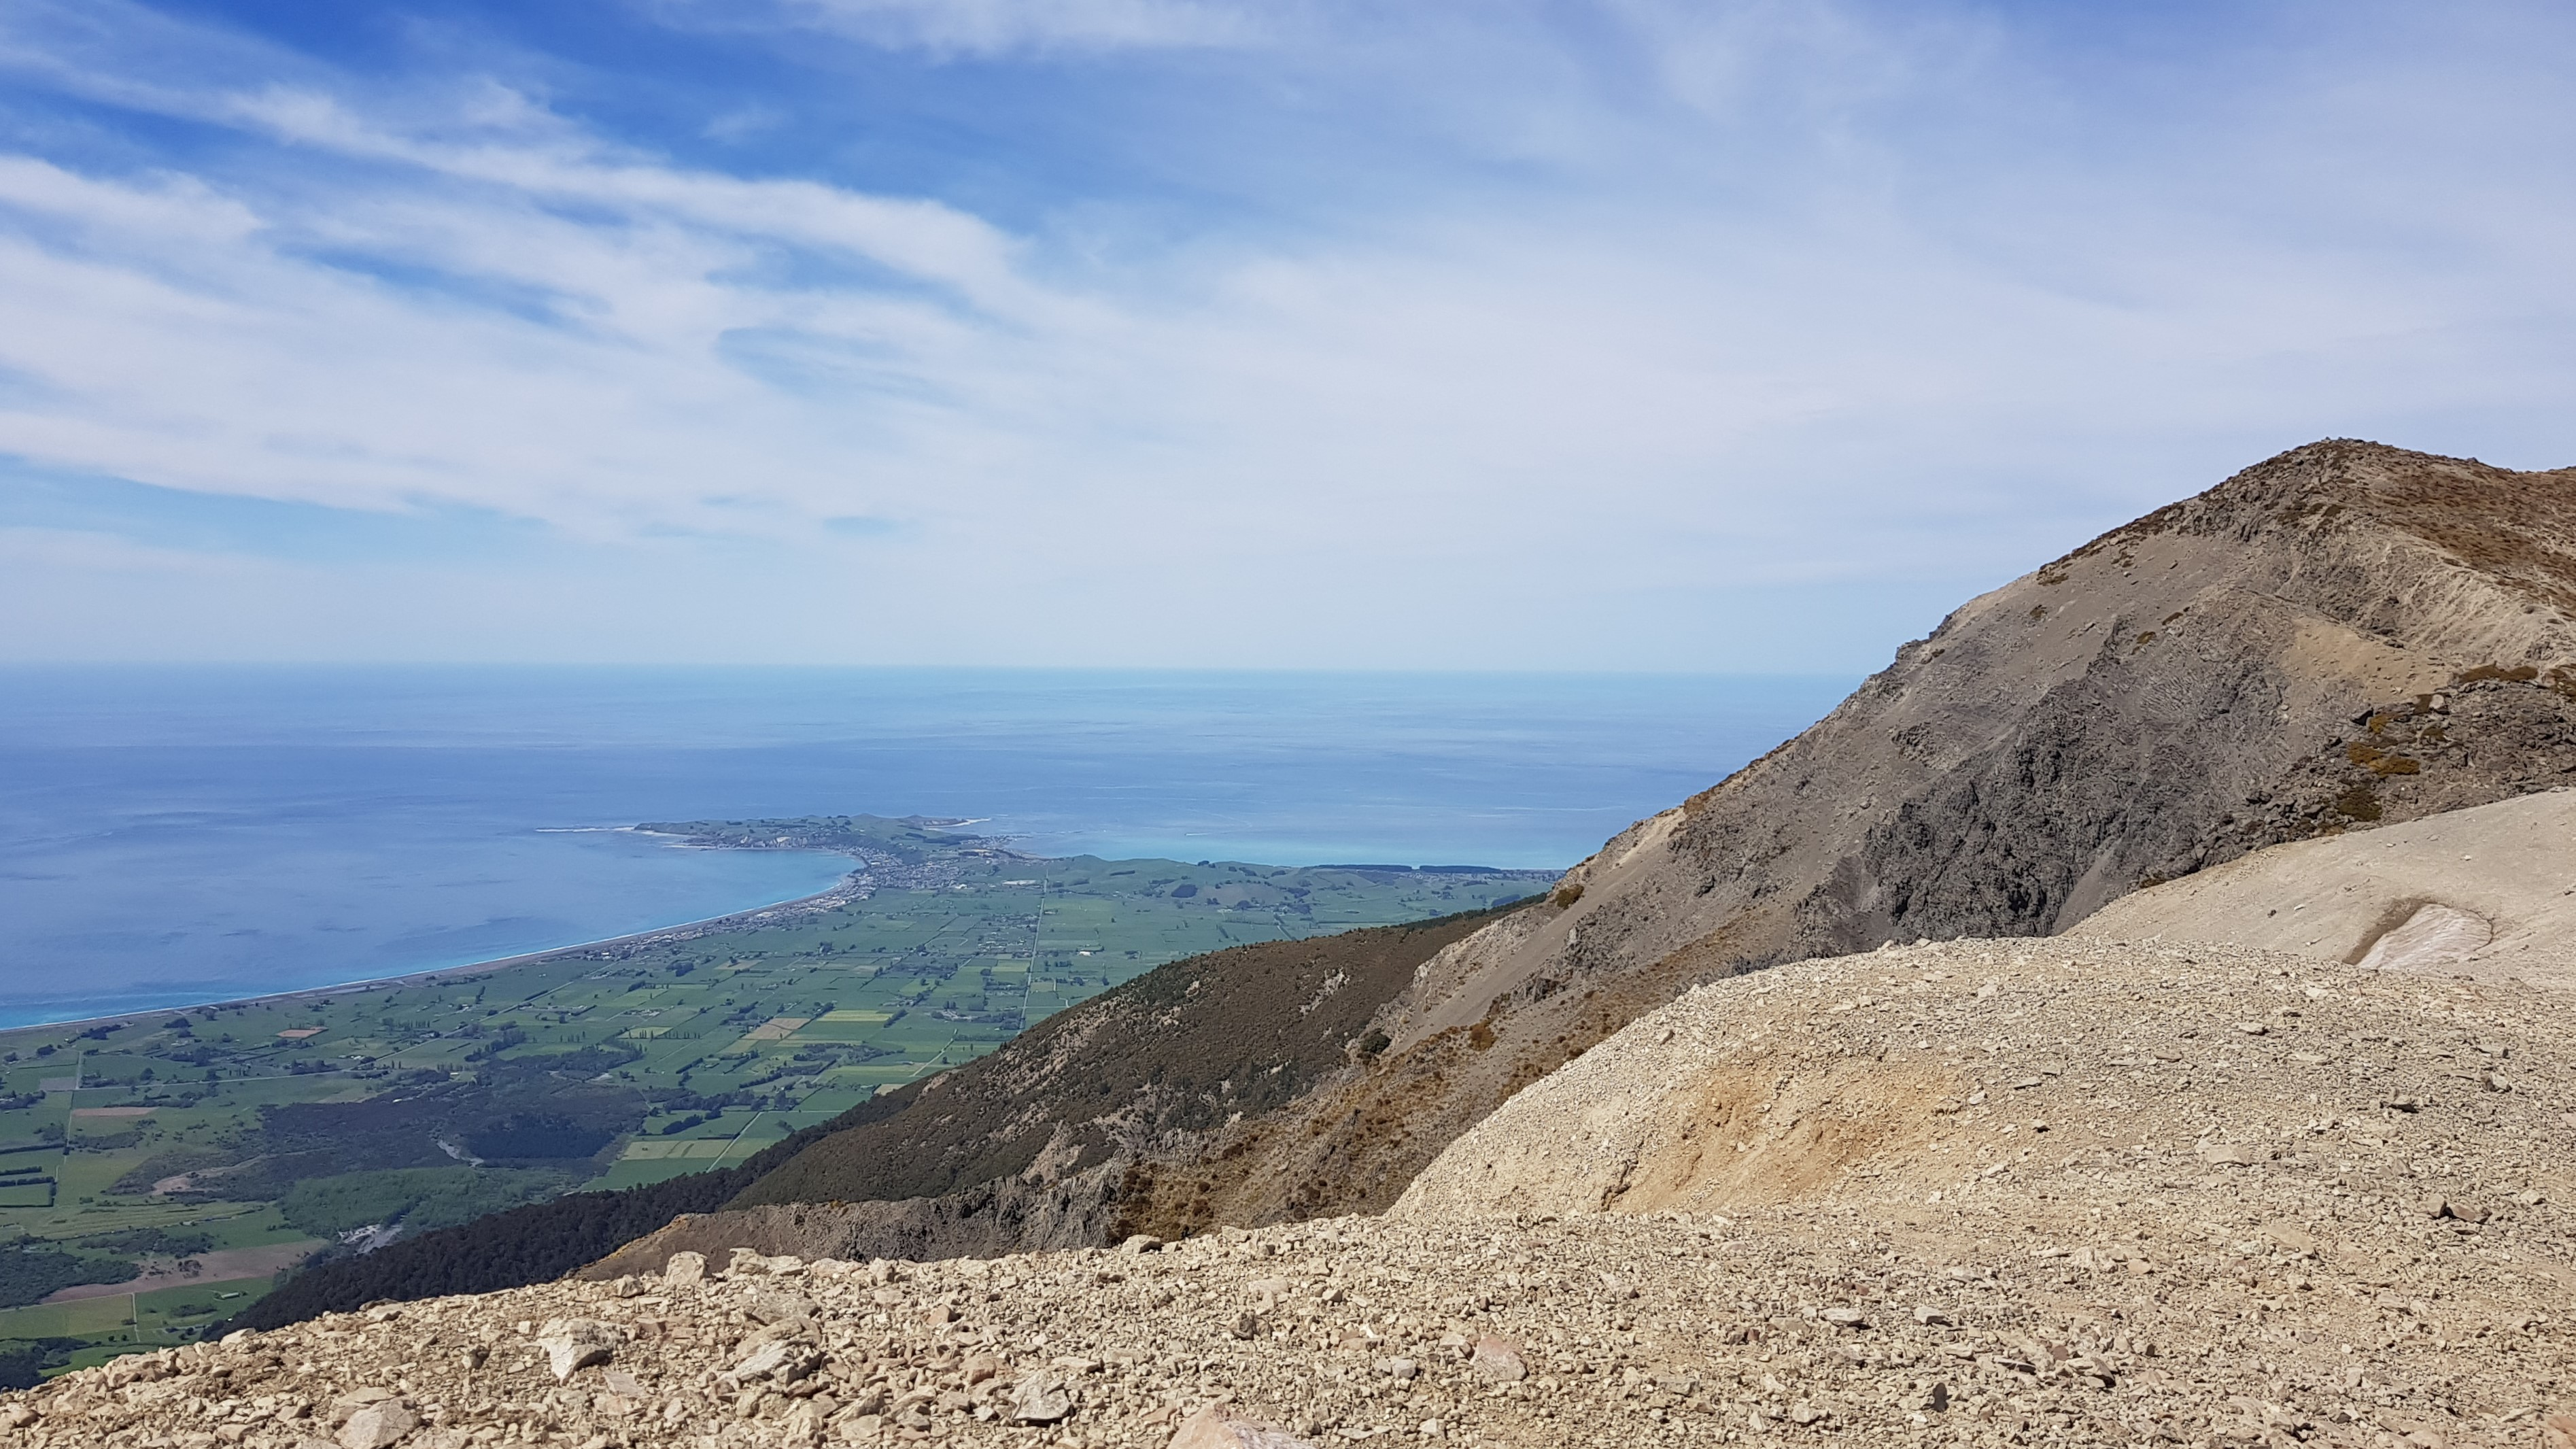 Kaikoura township from the Mt Fyffe-Gable ridge